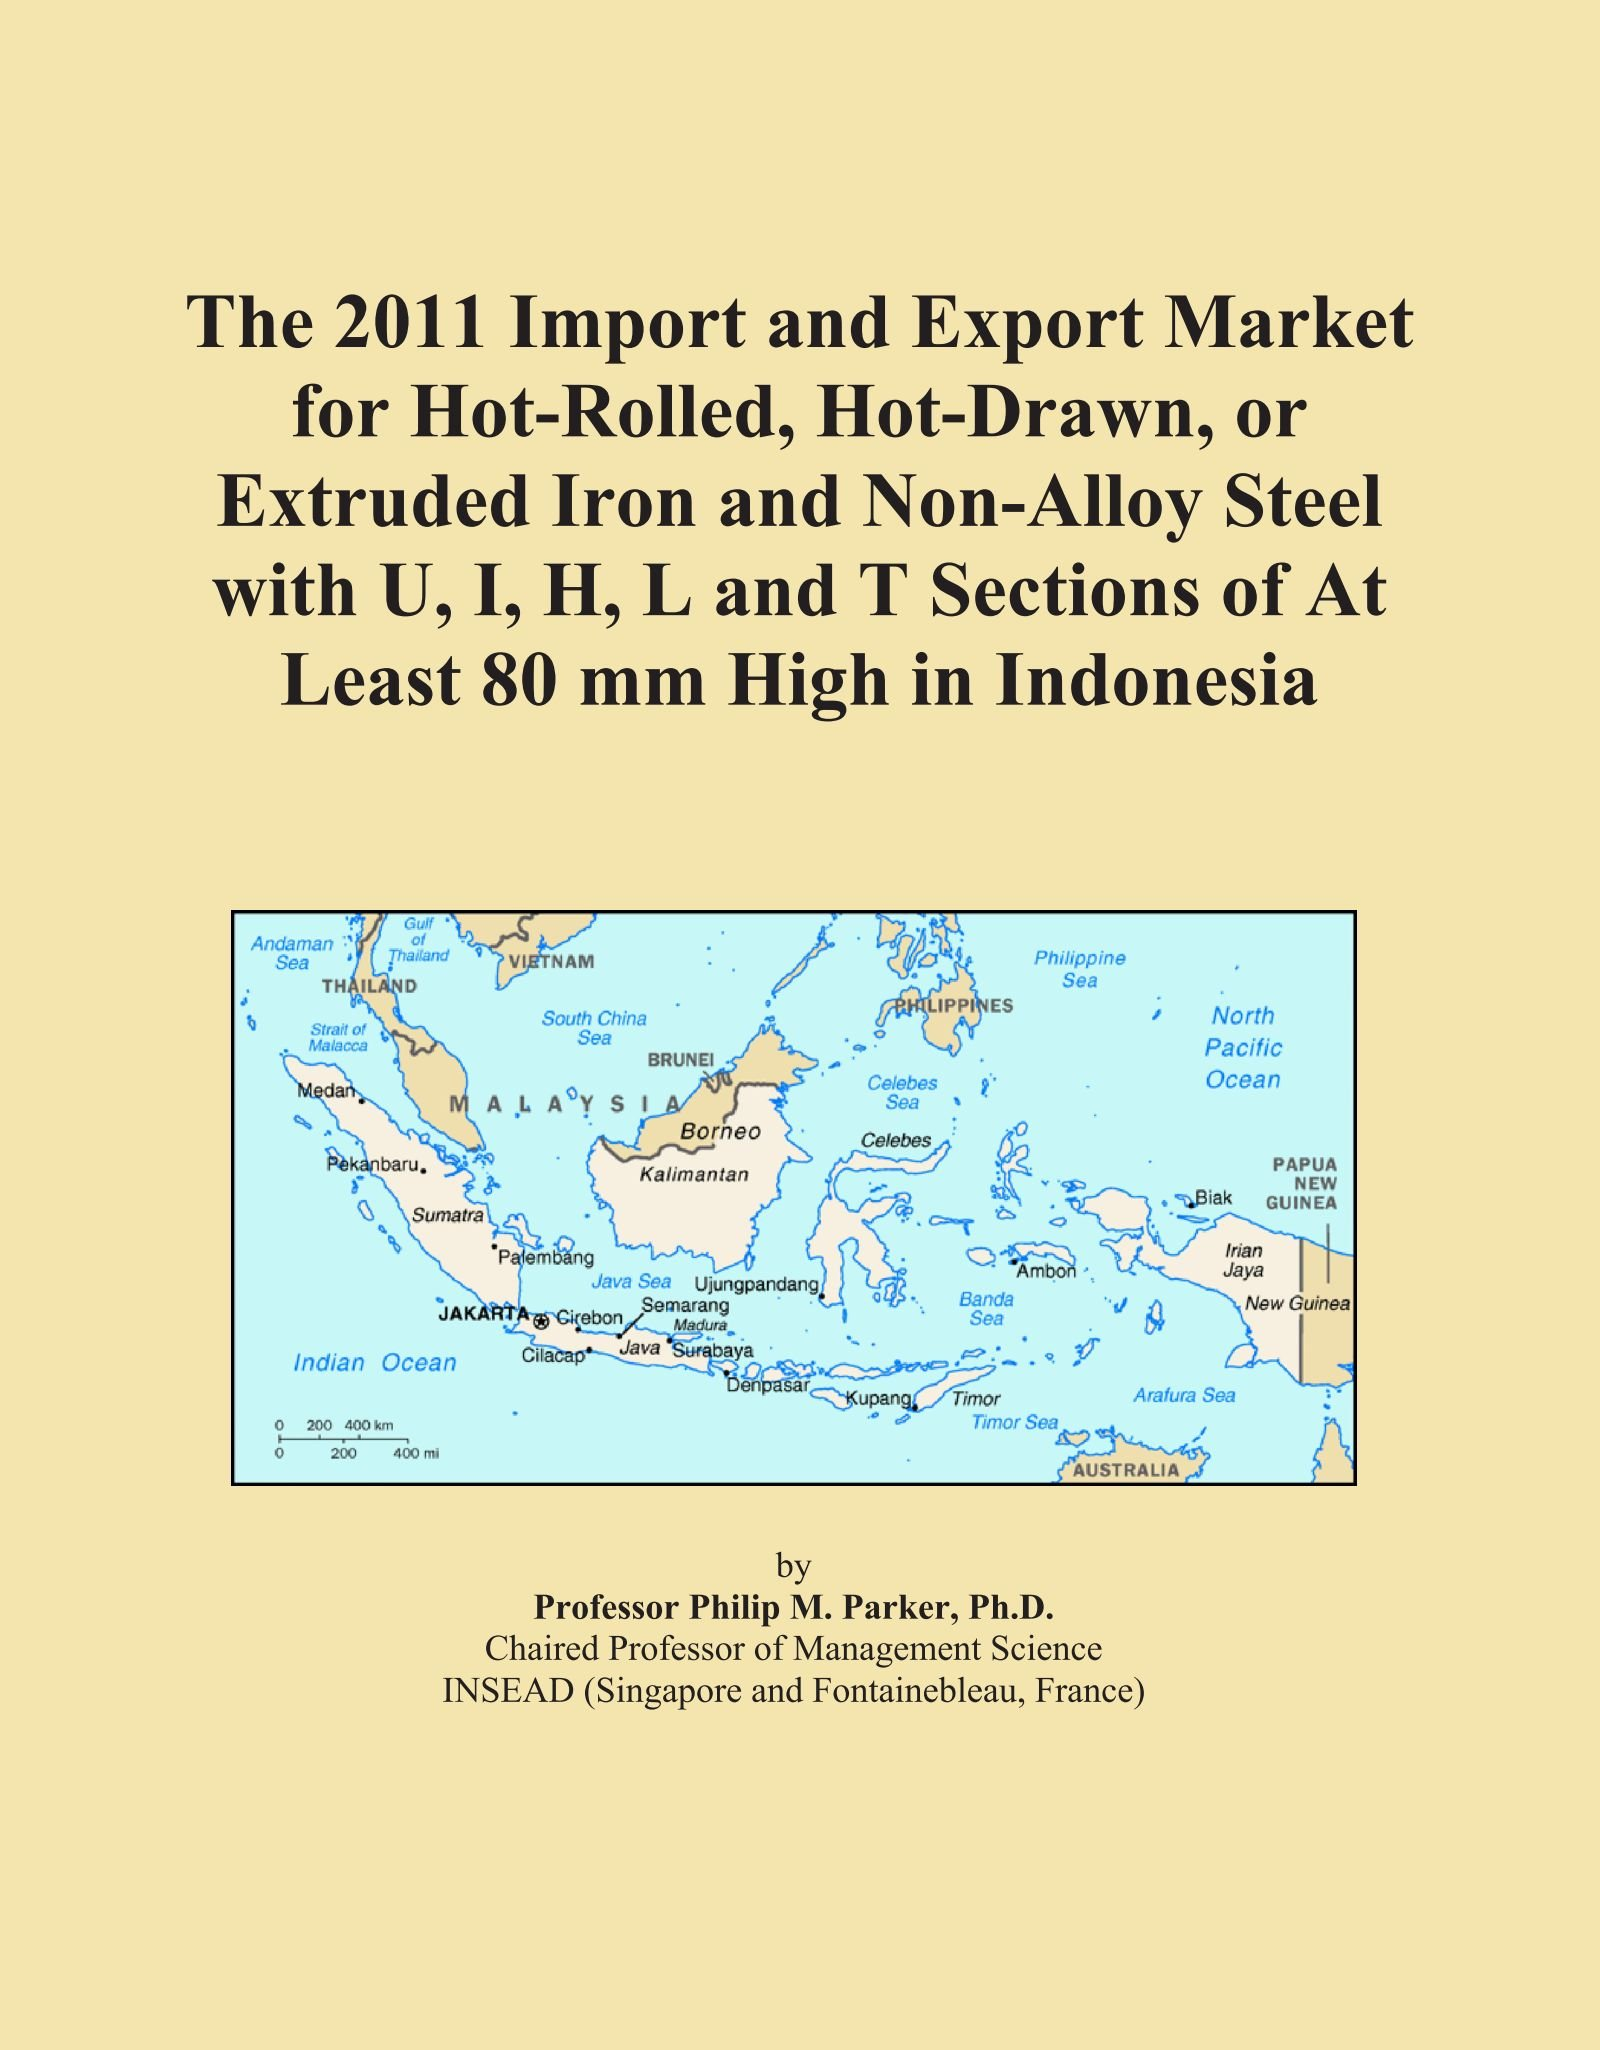 The 2011 Import and Export Market for Hot-Rolled, Hot-Drawn, or Extruded Iron and Non-Alloy Steel with U, I, H, L and T Sections of At Least 80 mm High in Indonesia Text fb2 ebook